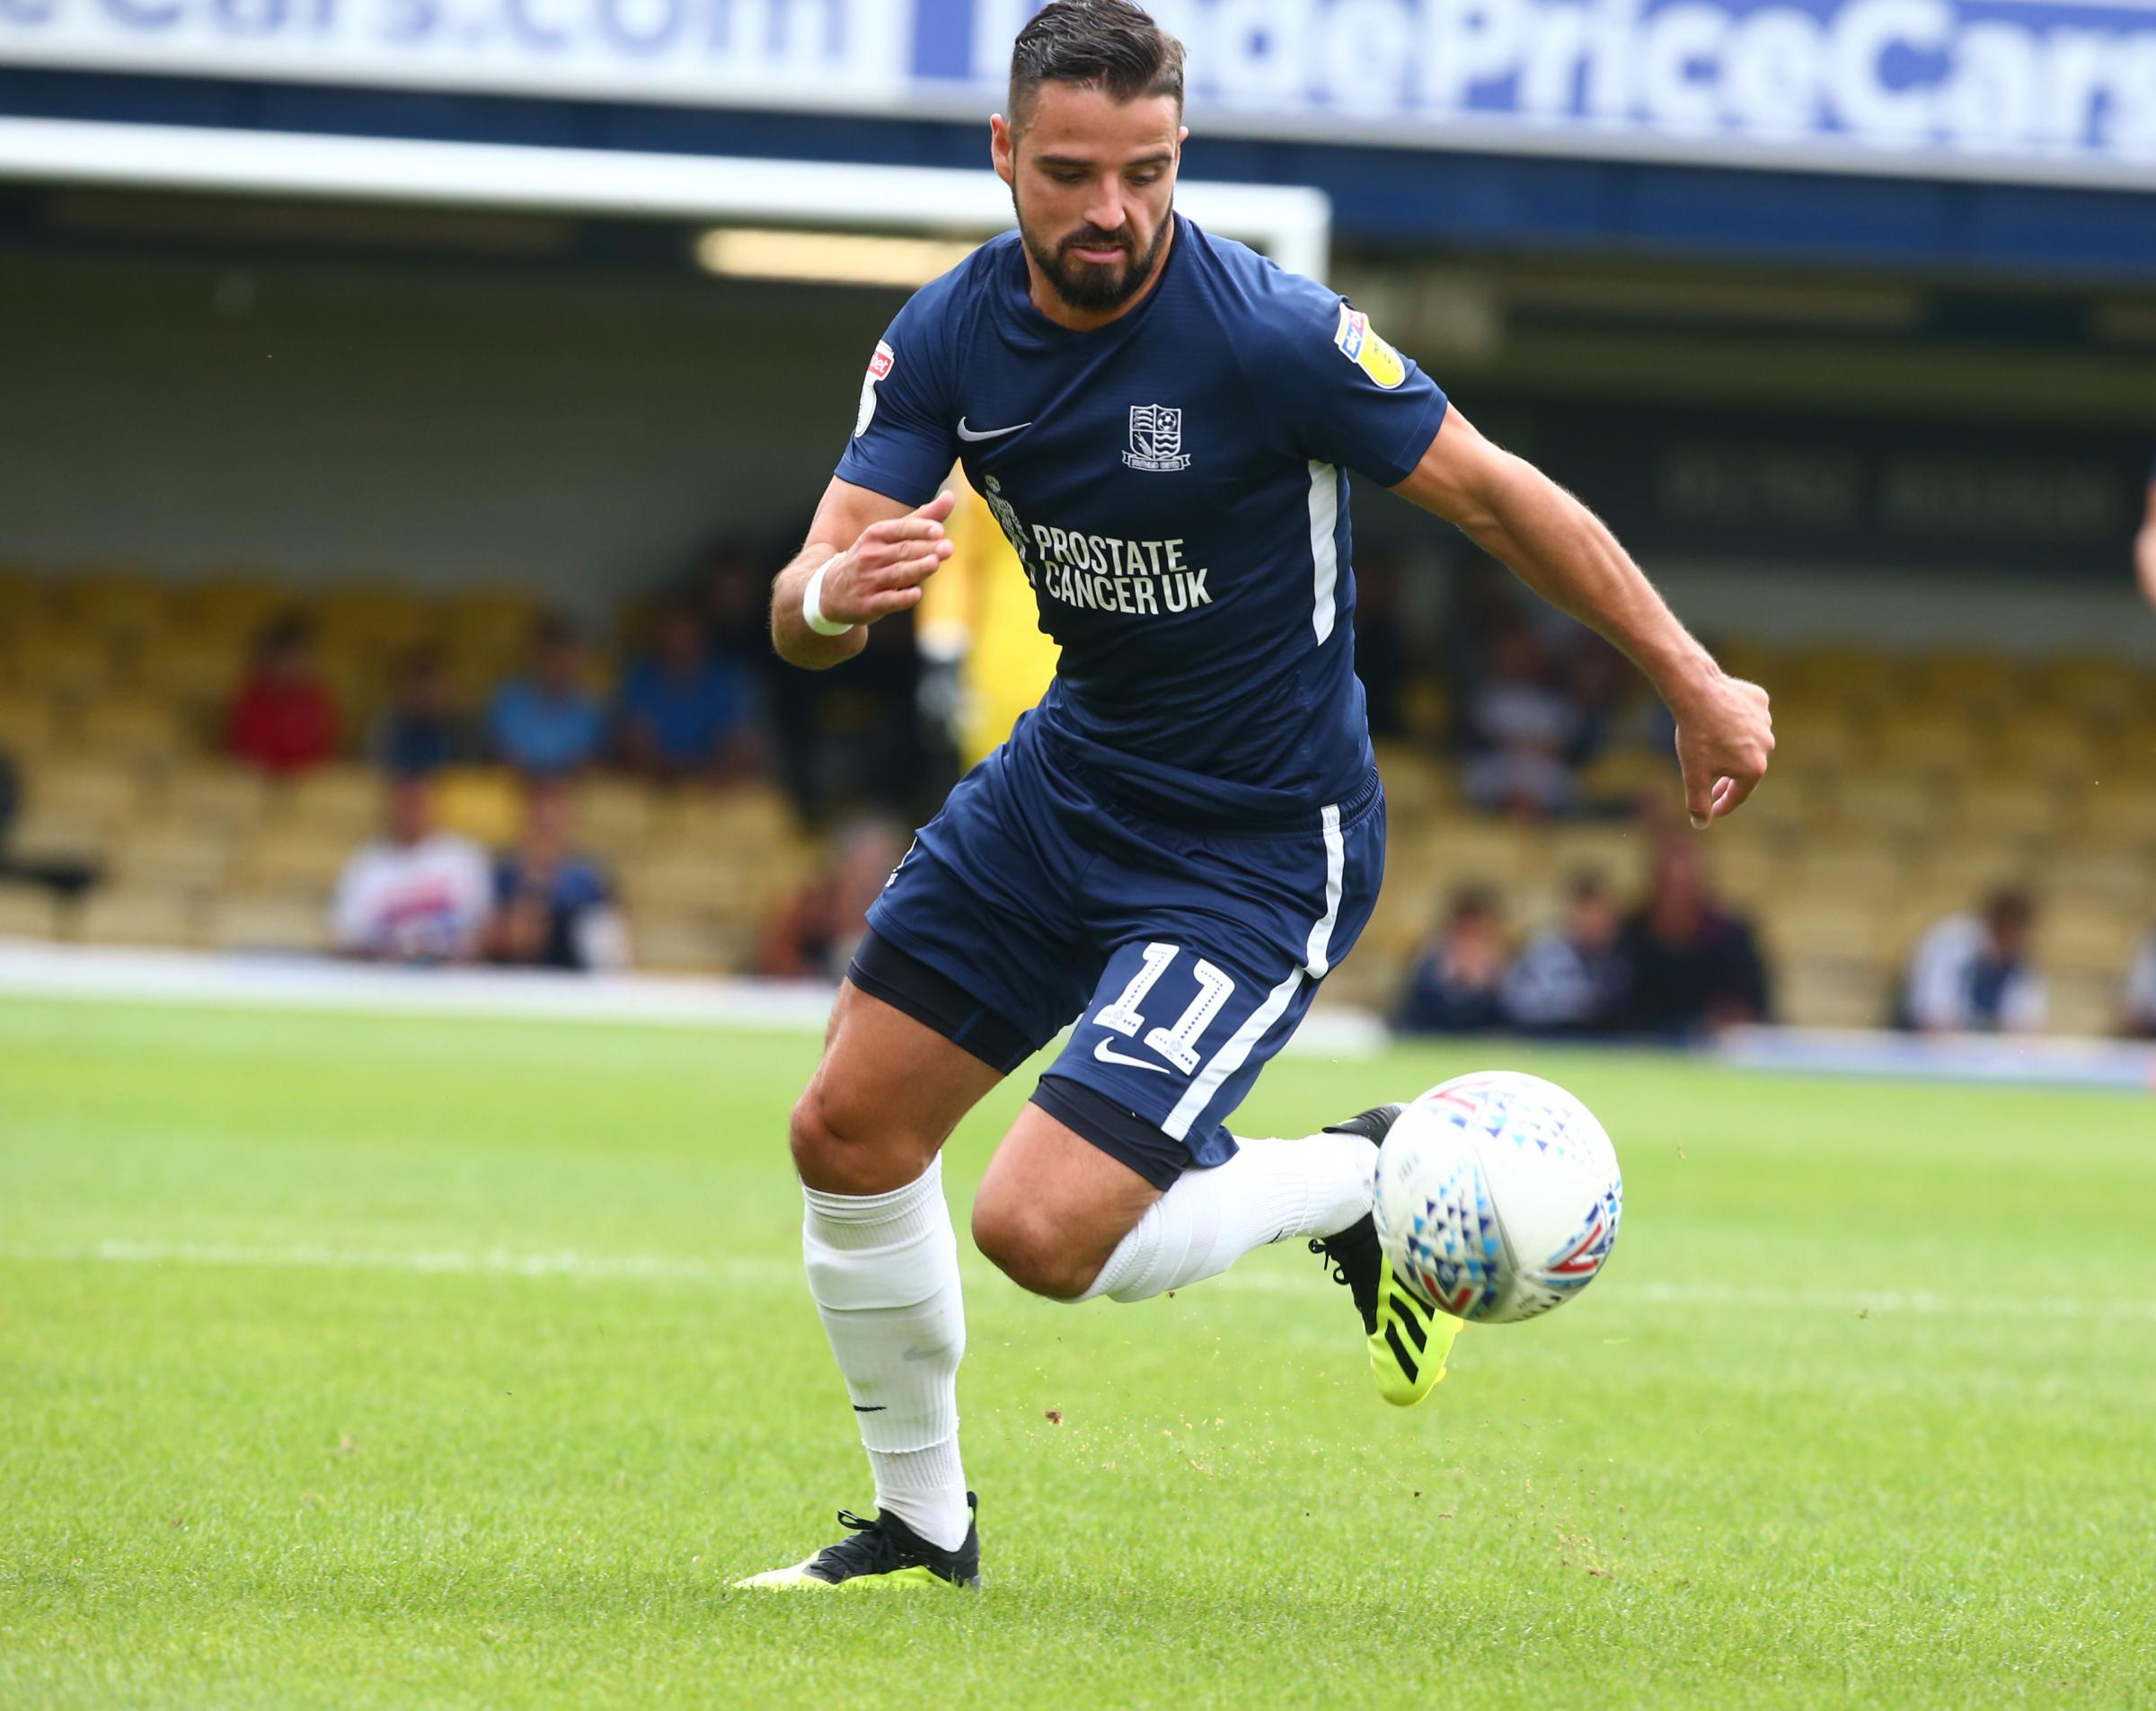 Not featuring - Southend United winger Stephen McLaughlin has not travelled to Blackpool